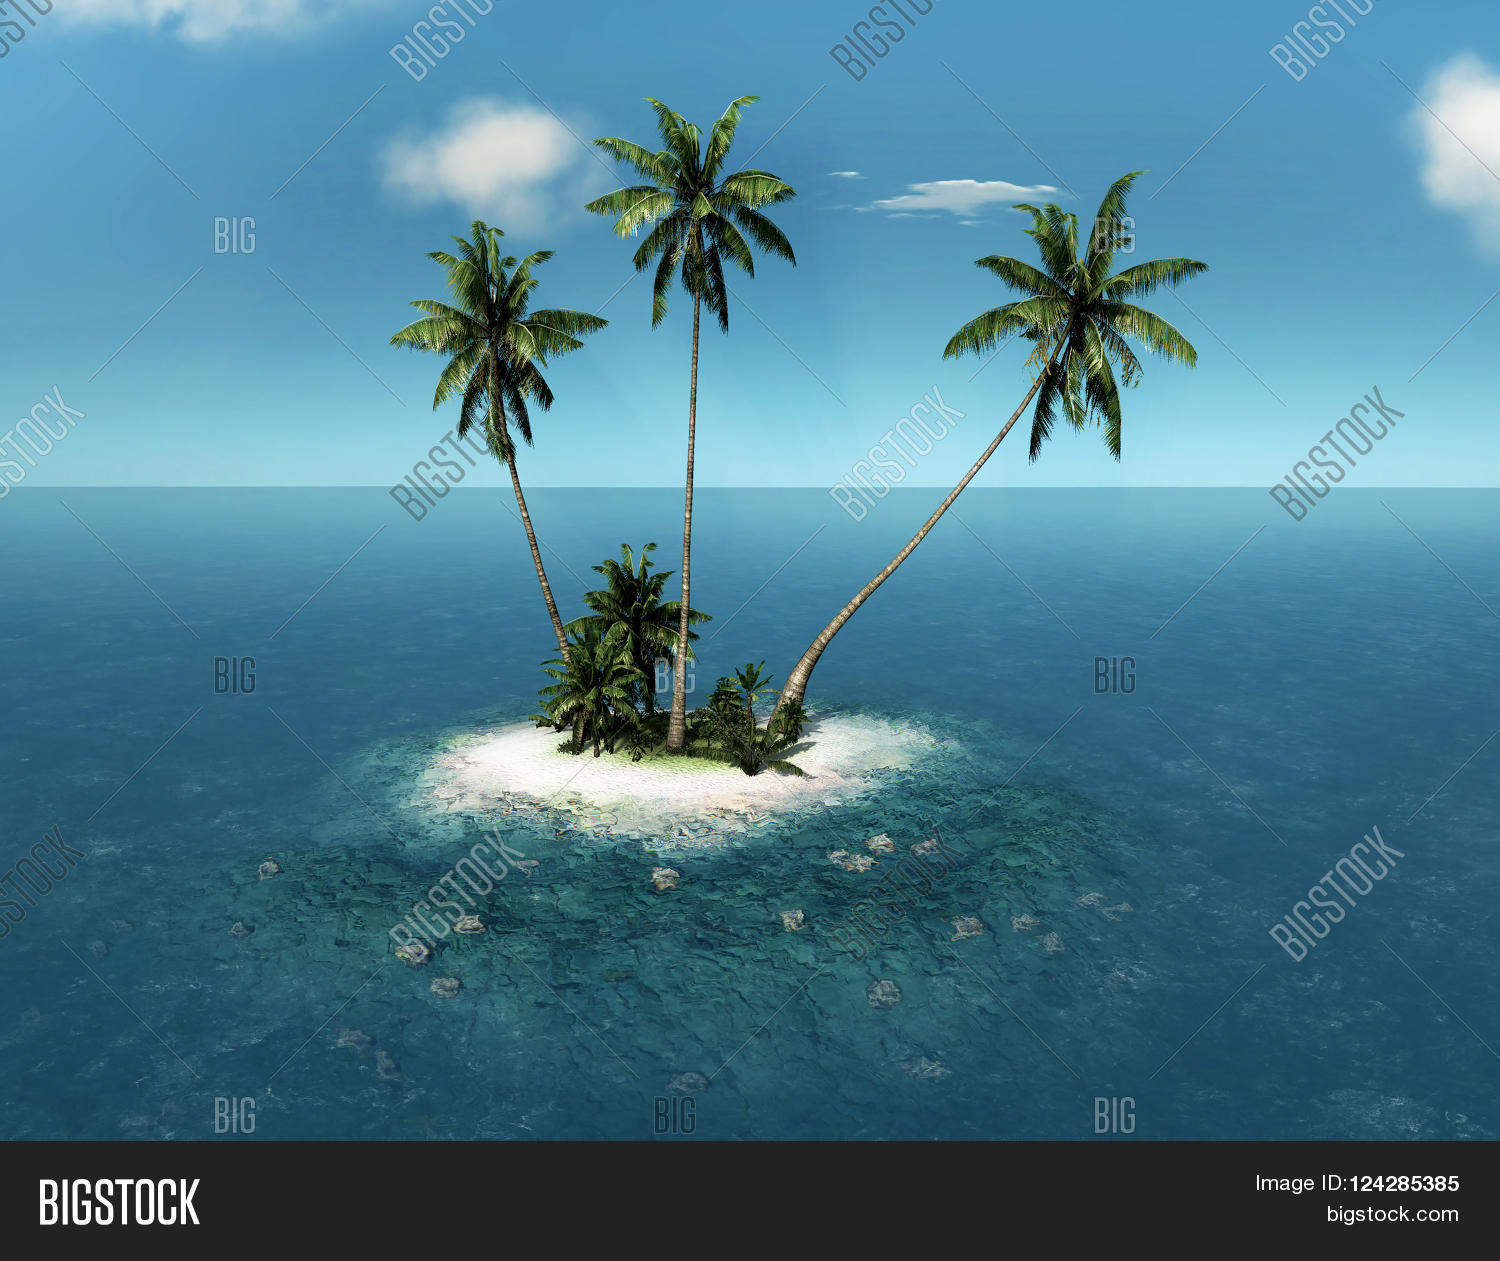 Palm Tree Island: Tropical Island Palm Image & Photo (Free Trial)